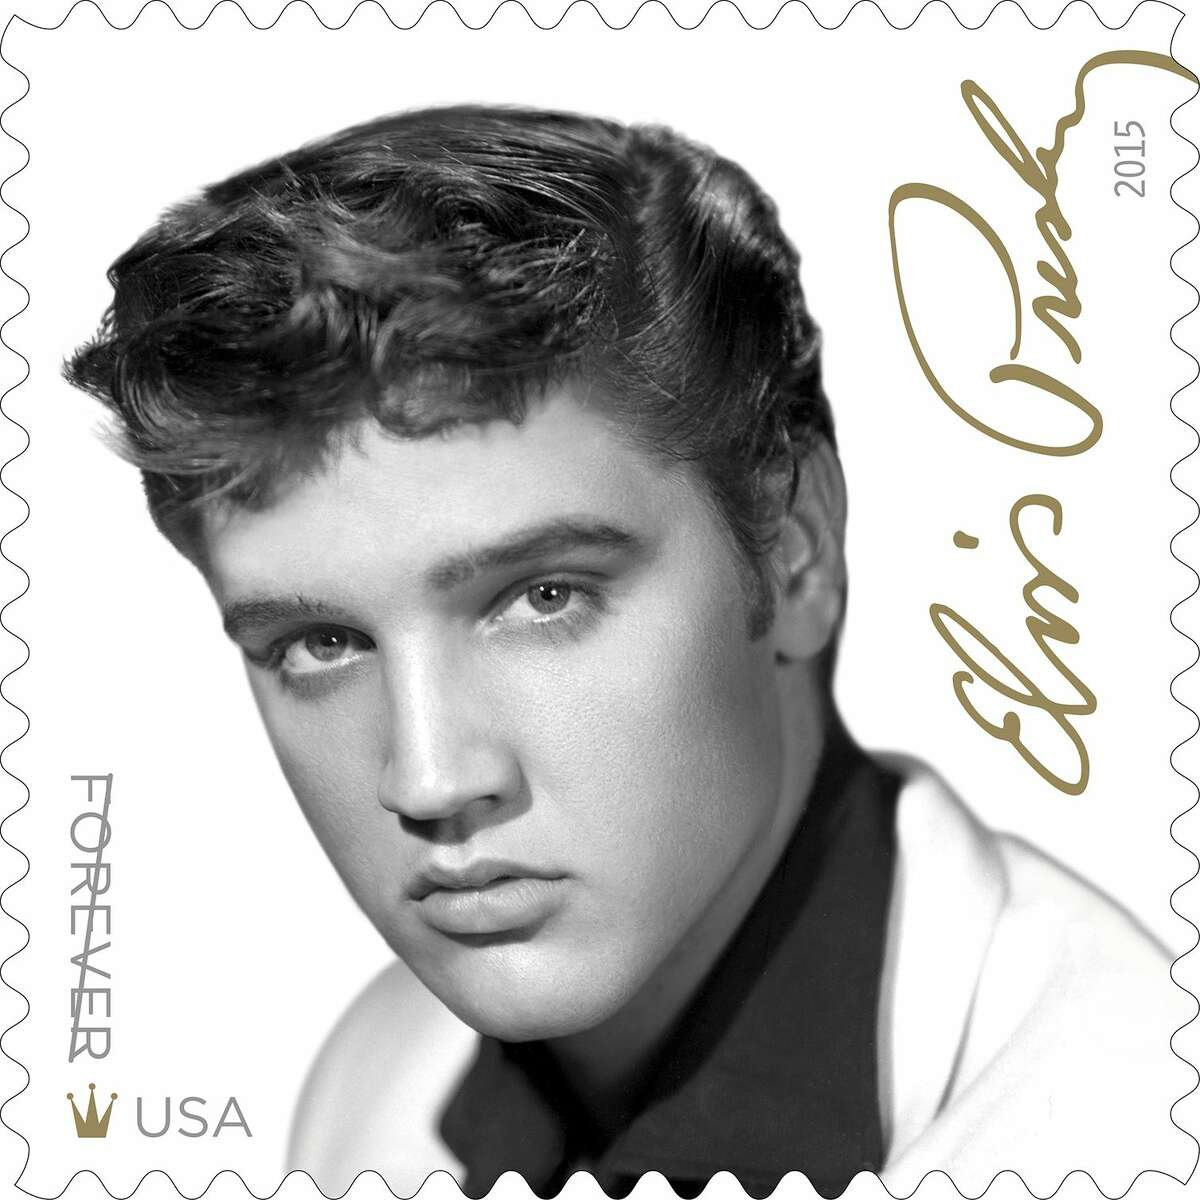 This image released by the United States Postal Service shows the new Elvis Presley forever stamp available August 12. The USPS is also releasing an Elvis Presley greatest hits CD